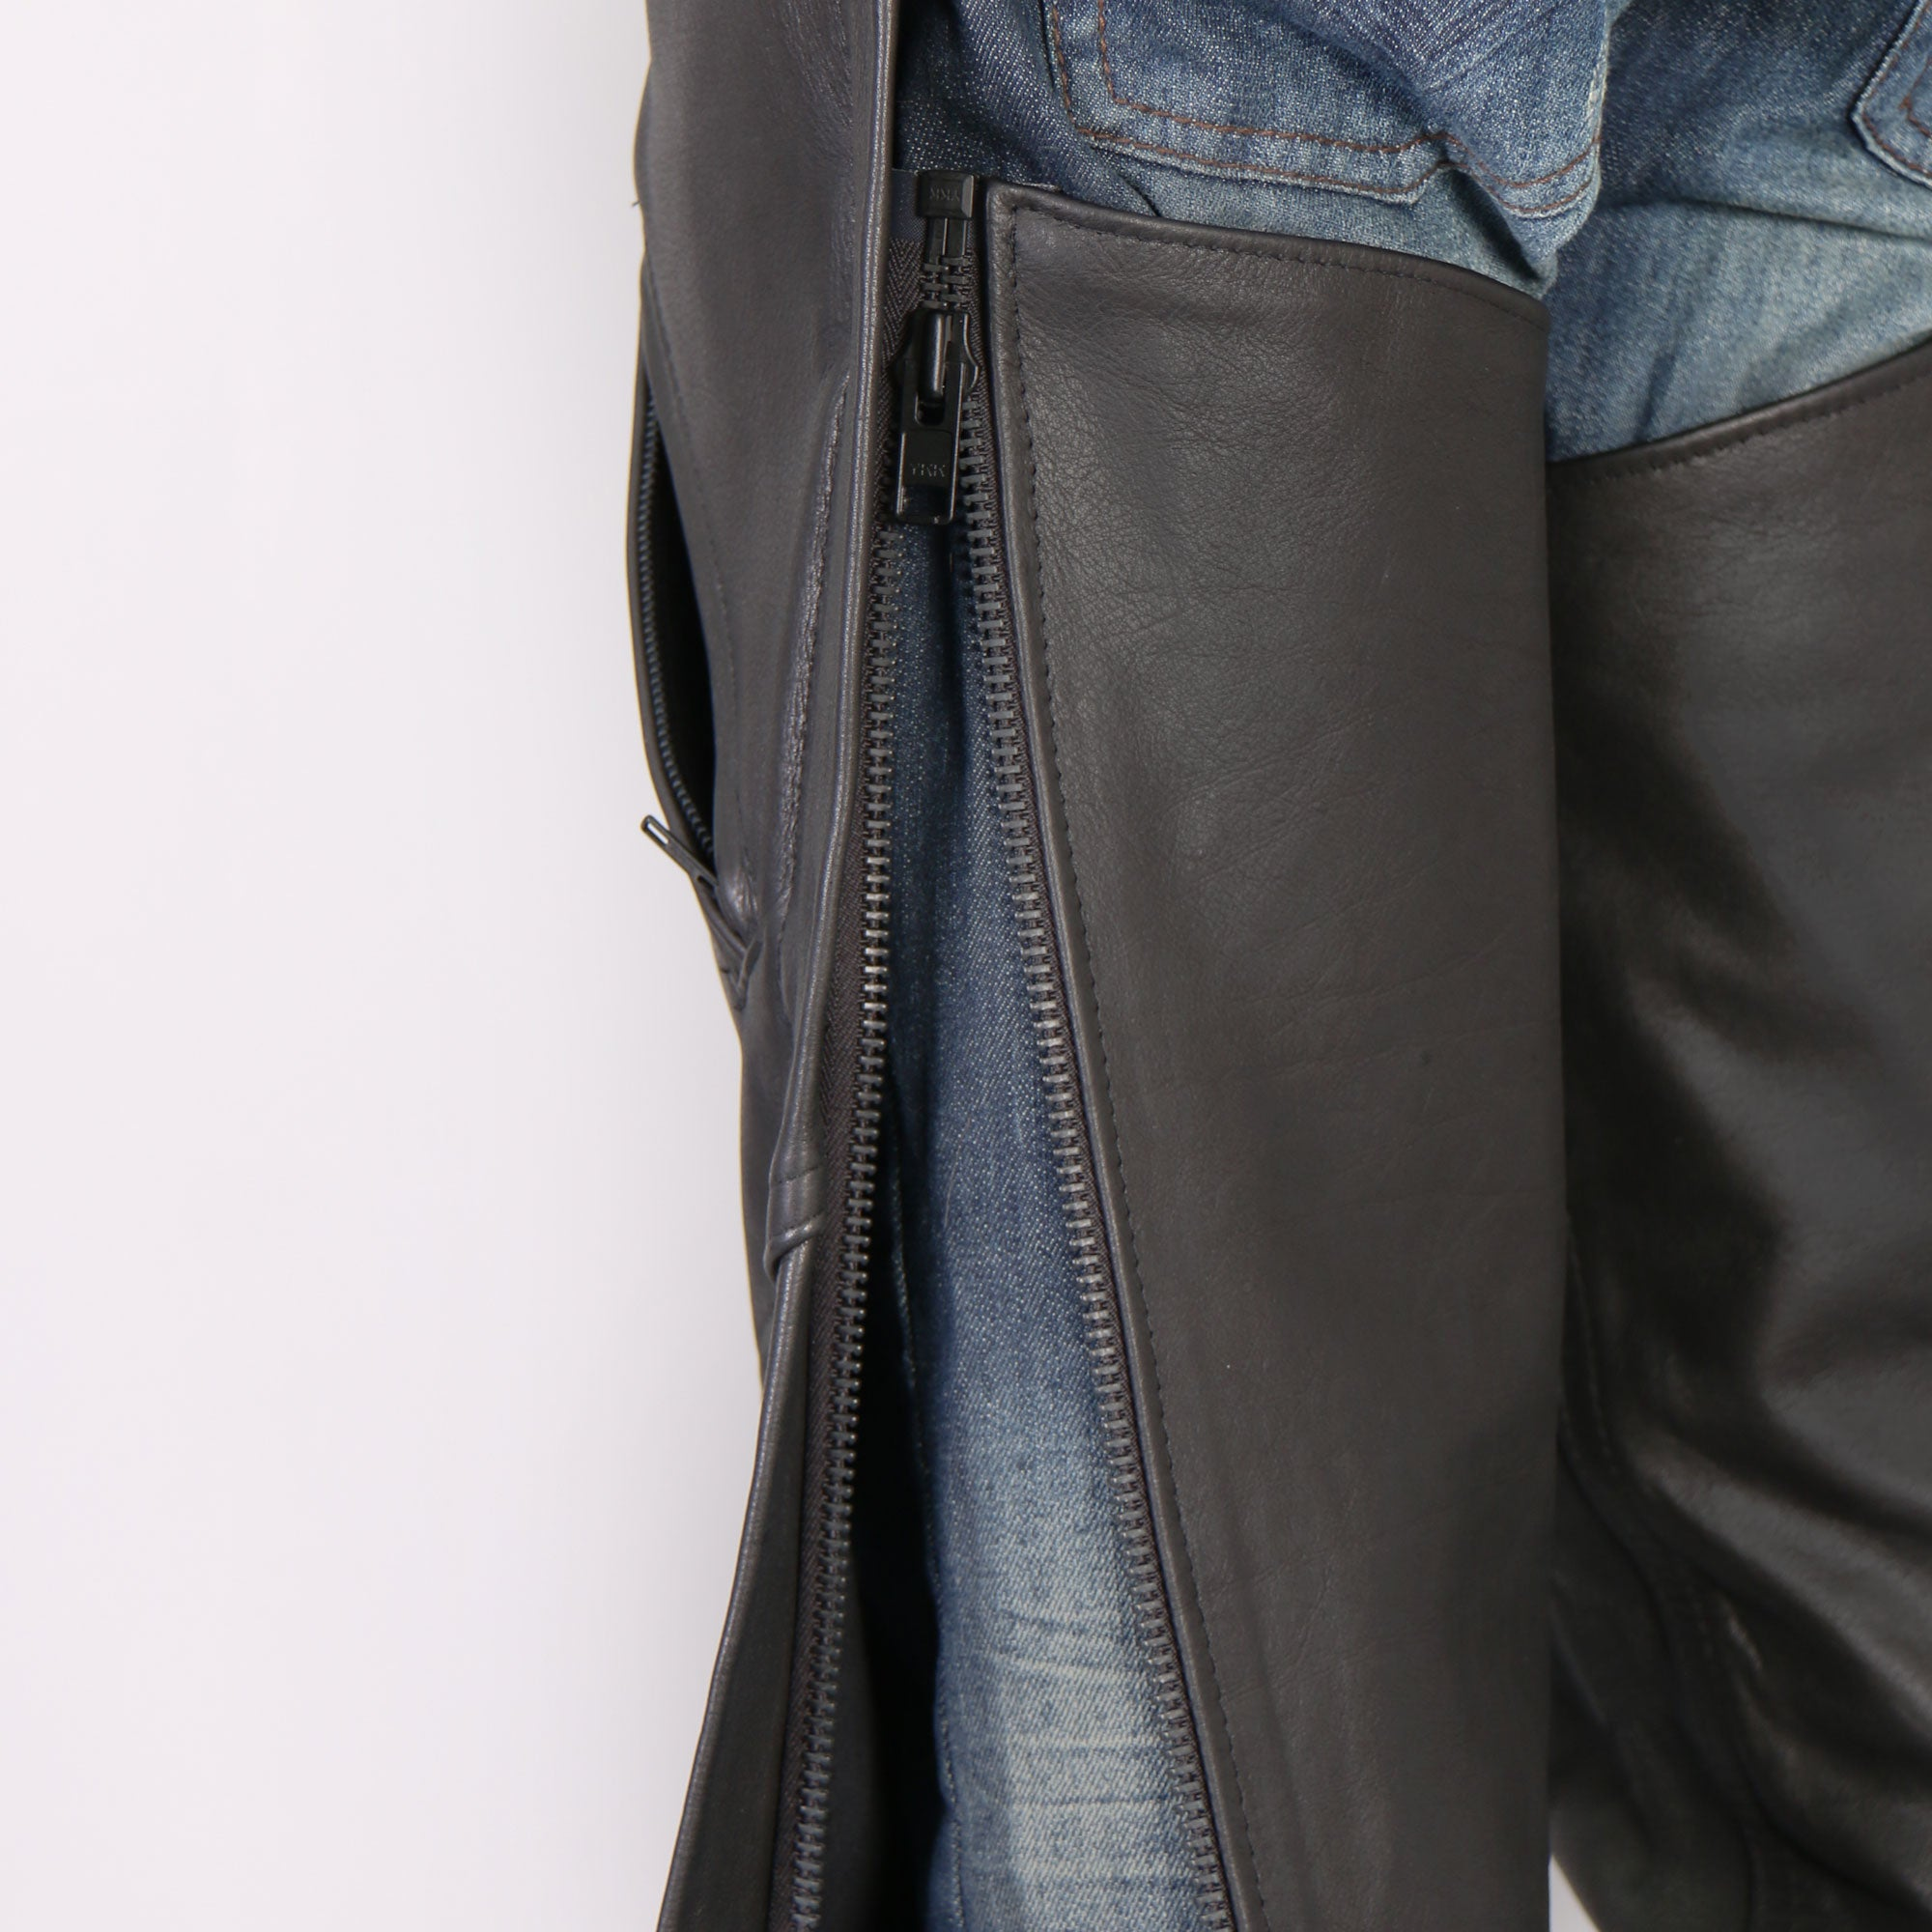 Hot Leathers USA Made Leather Chaps for Men